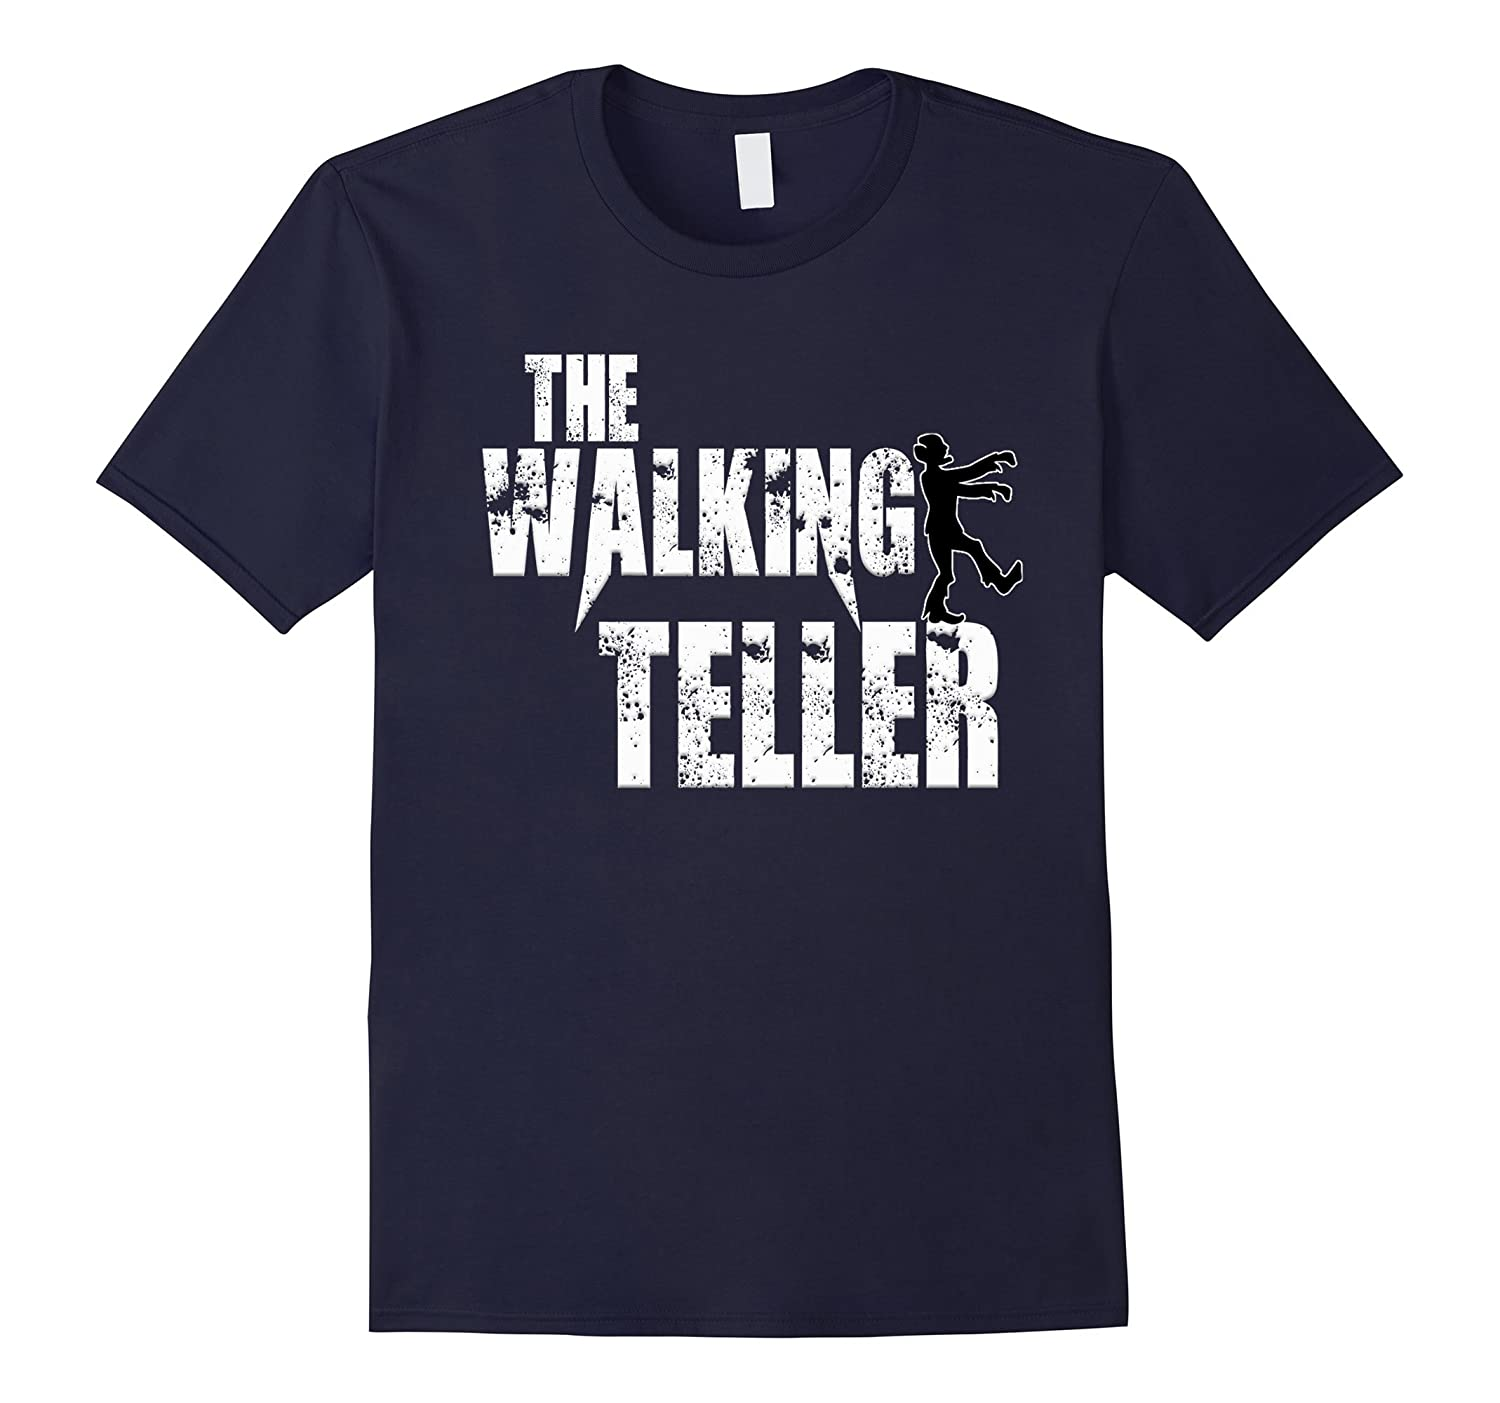 Teller Tshirt The Walking Cashier funny zombie tee shirt-TD